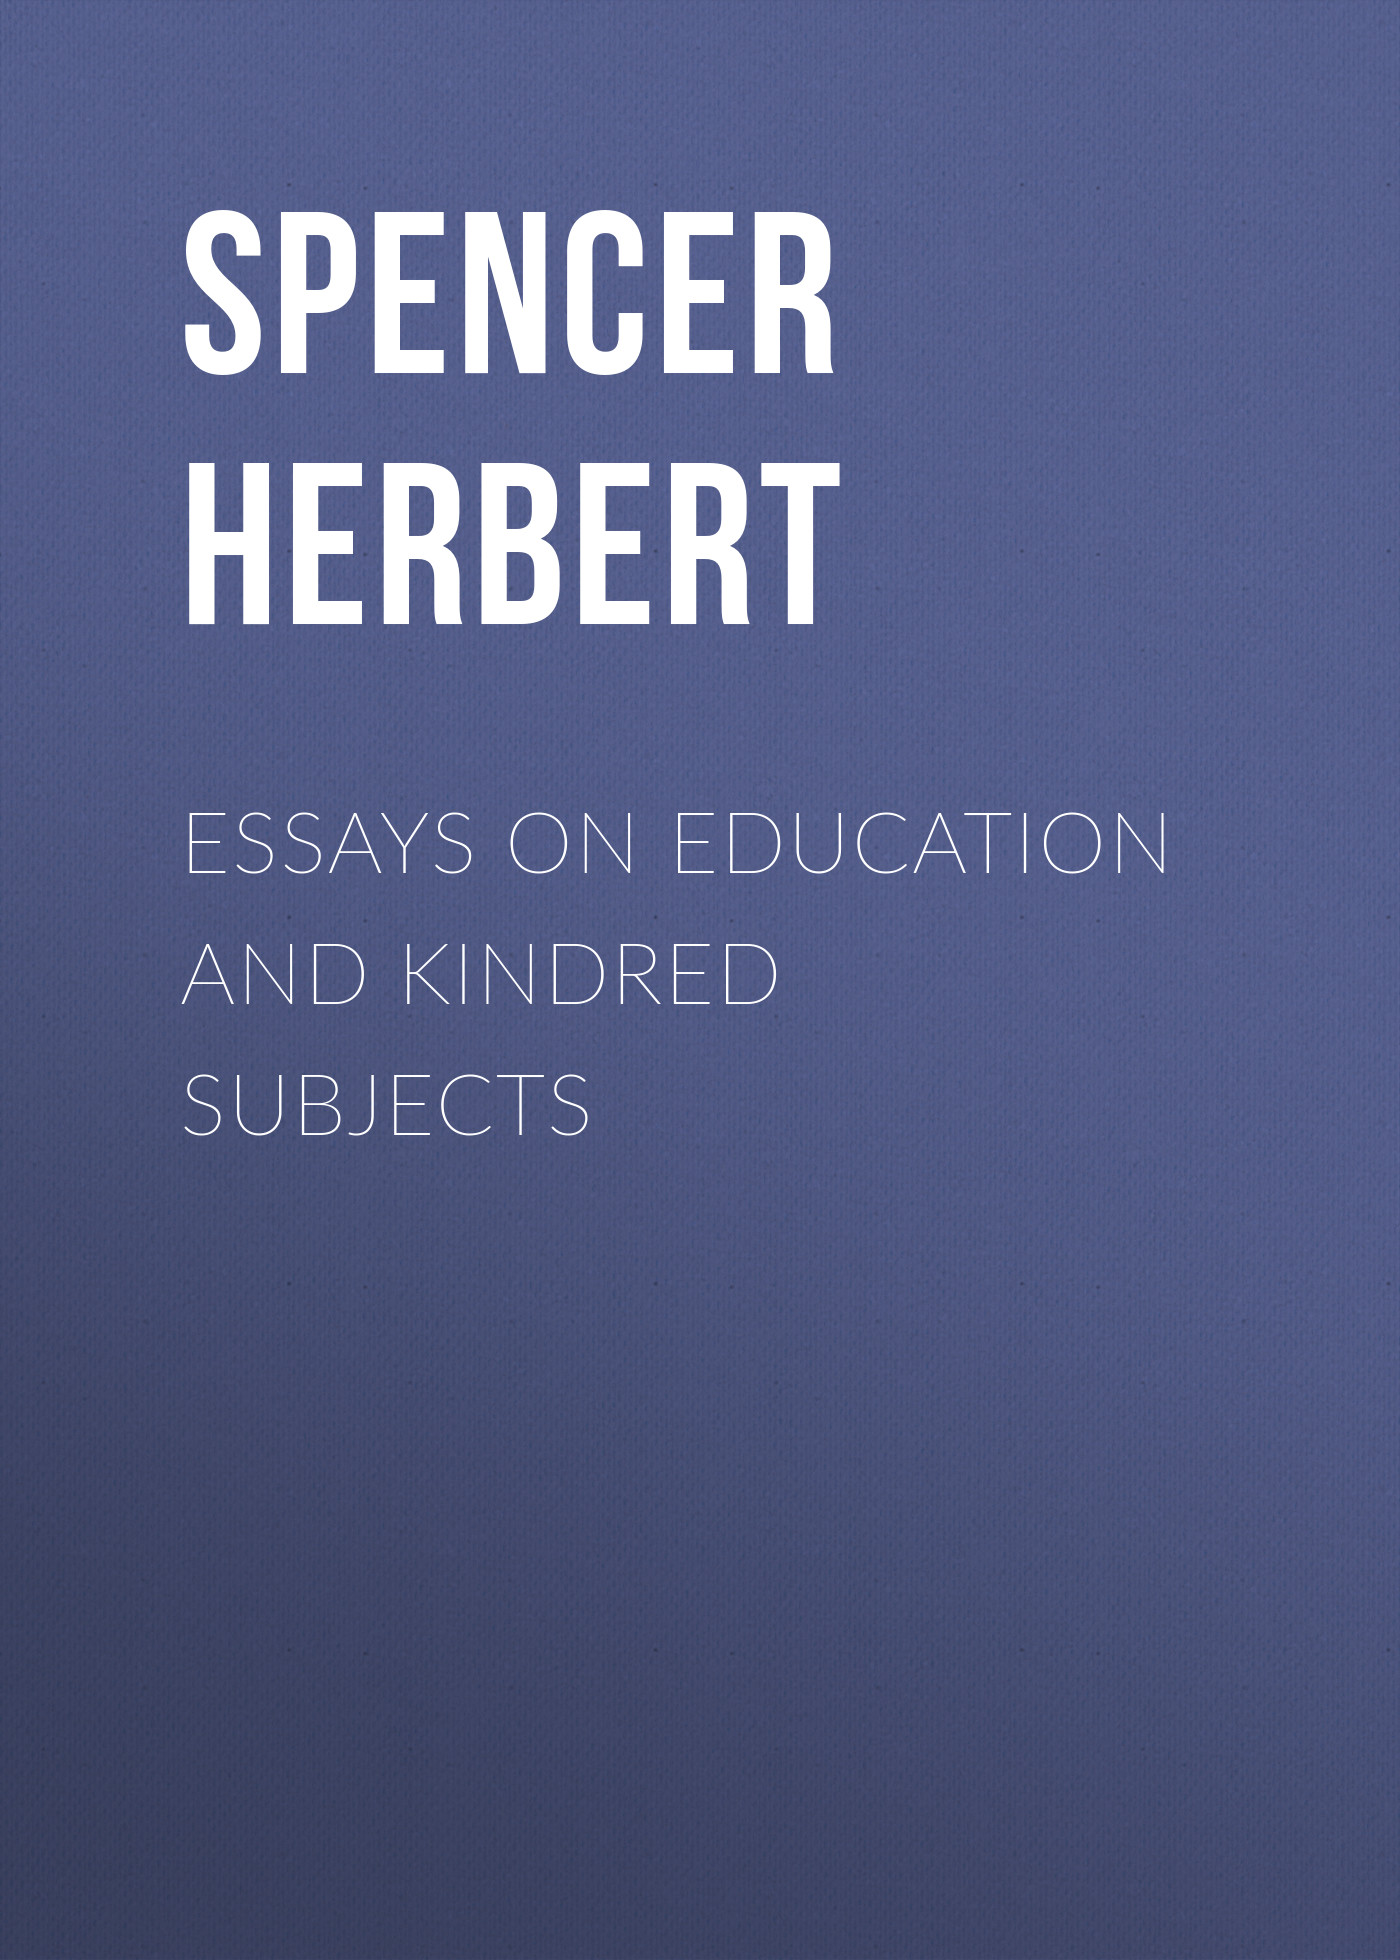 essays on parasitism Spencer Herbert Essays on Education and Kindred Subjects